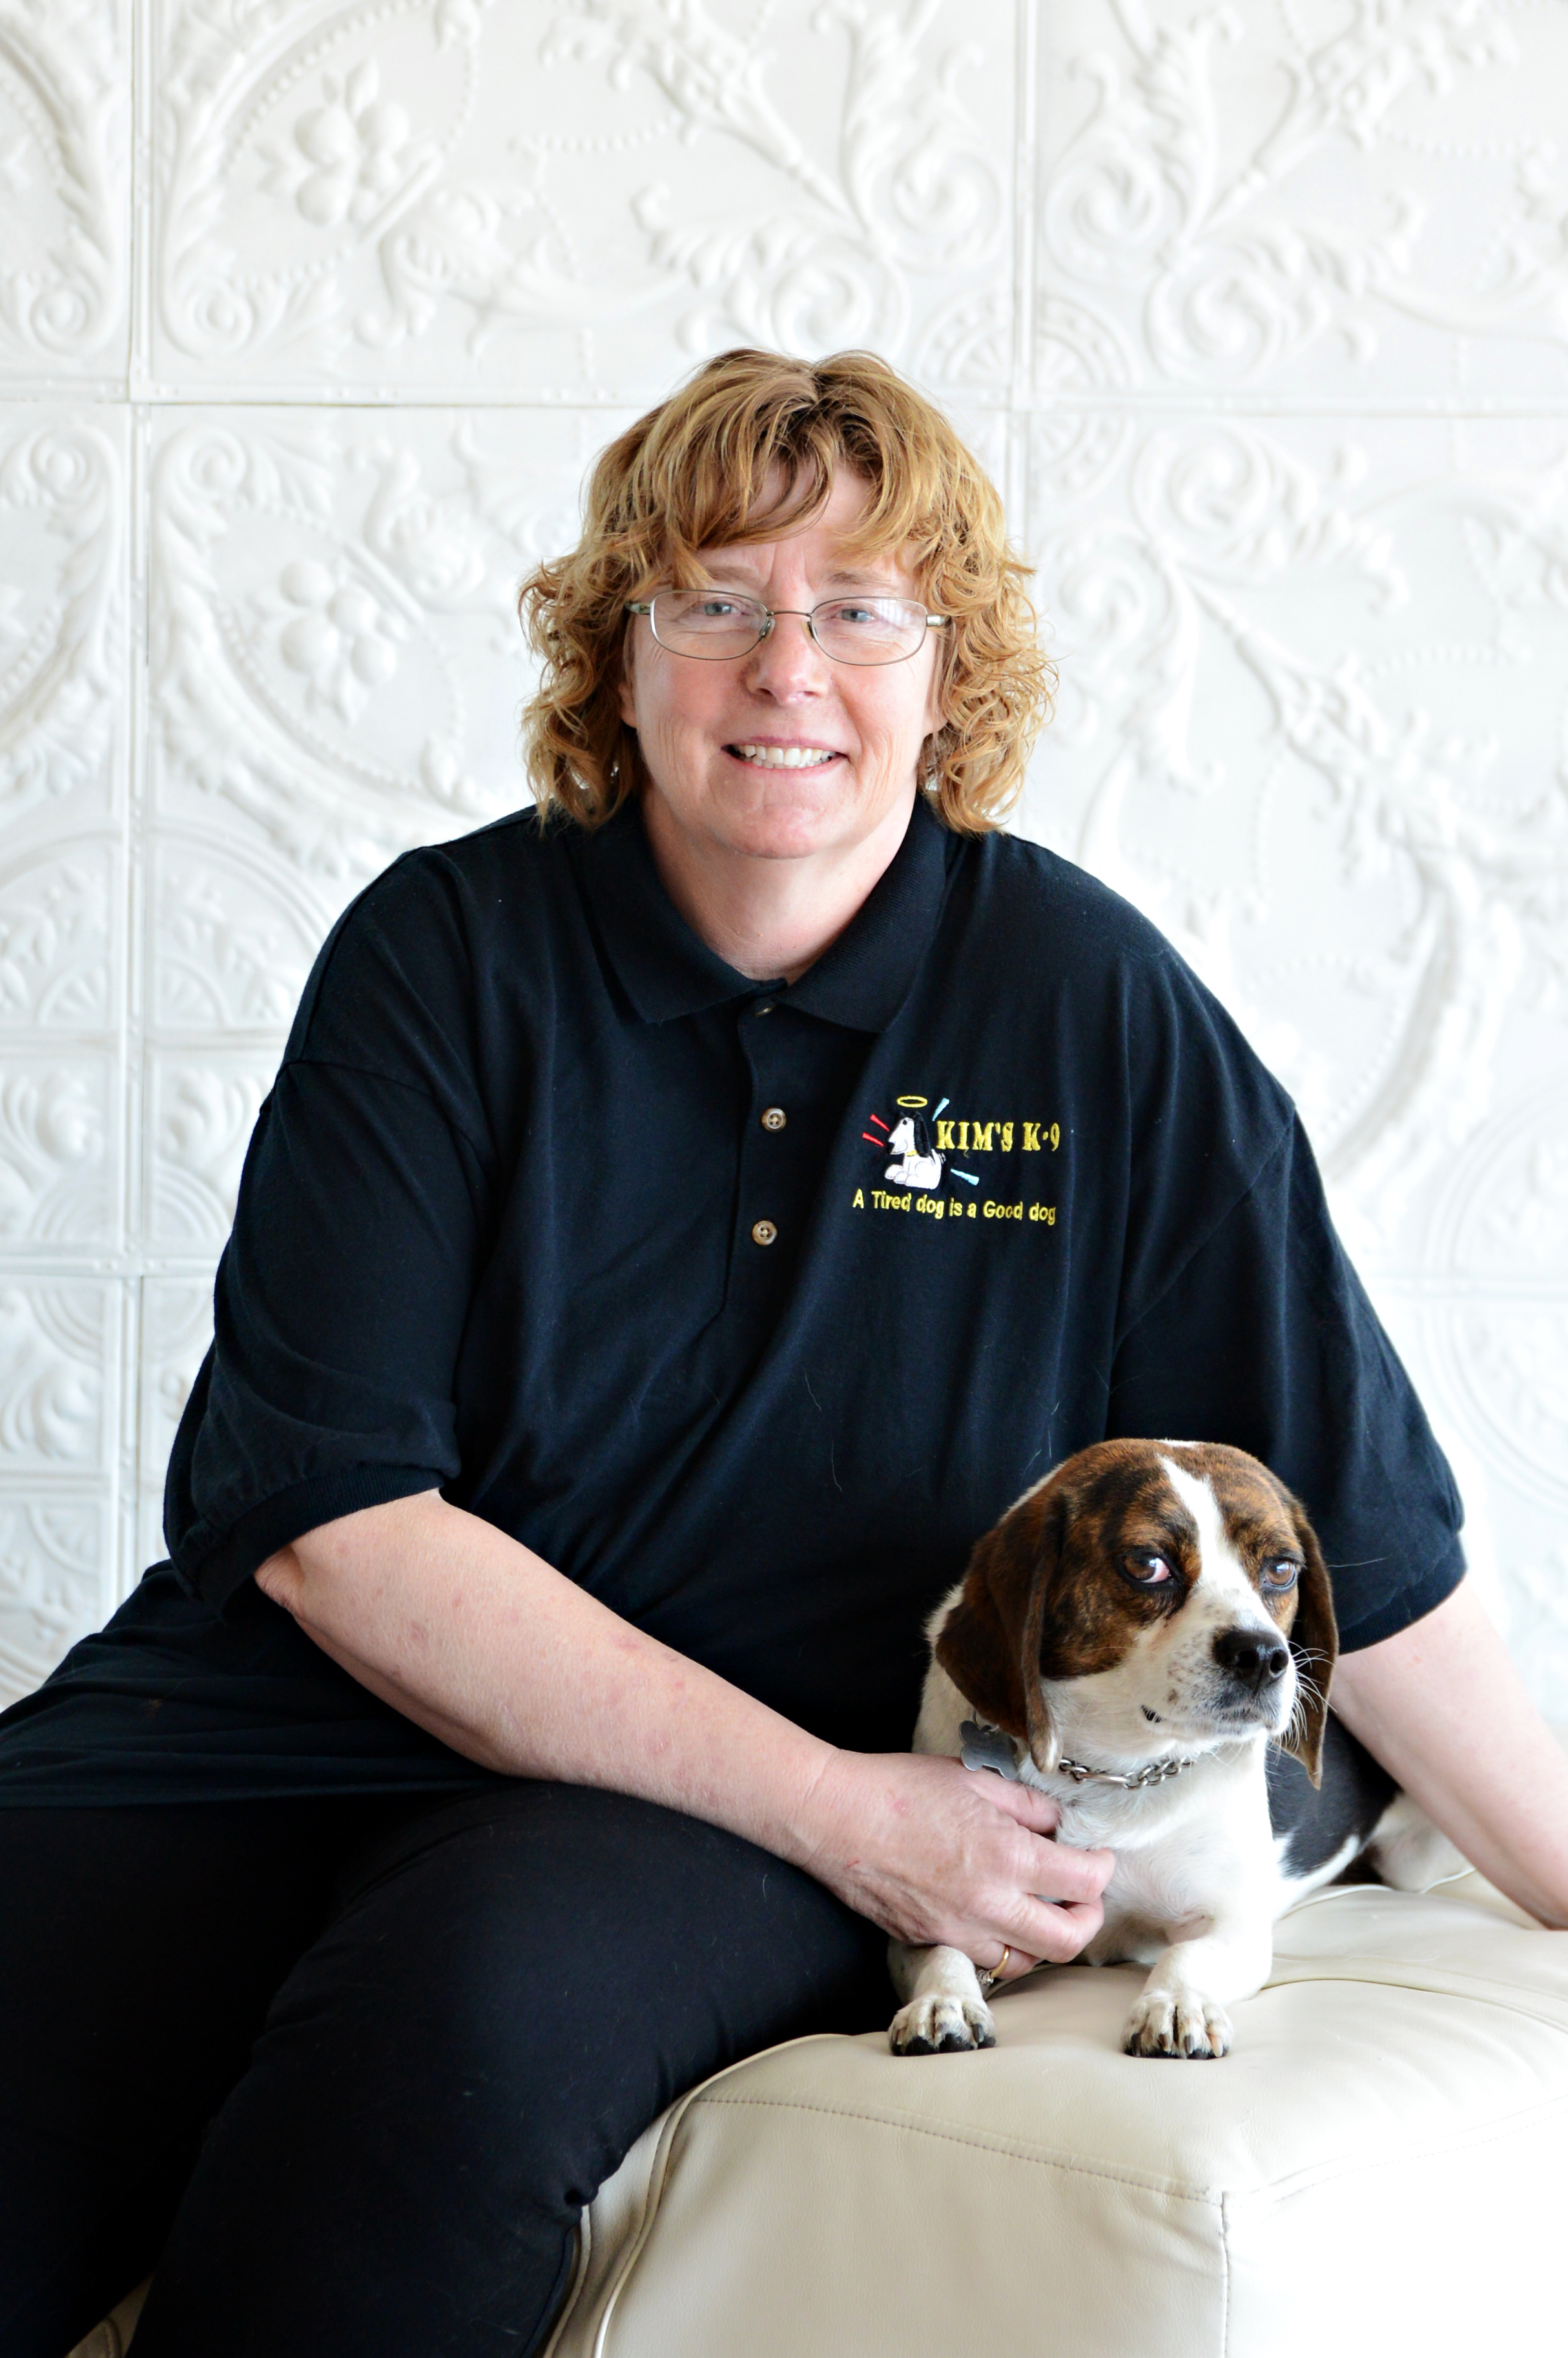 Kim Steffes- Owner, Certified Professional Dog Trainer - Kim is blessed to be able to follow her heart's passion: dogs. The kid who always brought strays home, Kim's love for animals has only grown. Certified as a professional dog trainer in 1987 from National K-9, she is also a professional member of the International Association of Canine Professionals (IACP). She has attended ongoing education with some of the highest ranking trainers in the world. Her hope is that you will allow her education, experience and dedication to take your relationship with your dog to the max! Kim has been happily married for over 30 years, has two grown children and an amazing granddaughter. She has shared her life with many truly awesome dogs. Currently, she has one adopted dog a tiny beagle named Squirt.